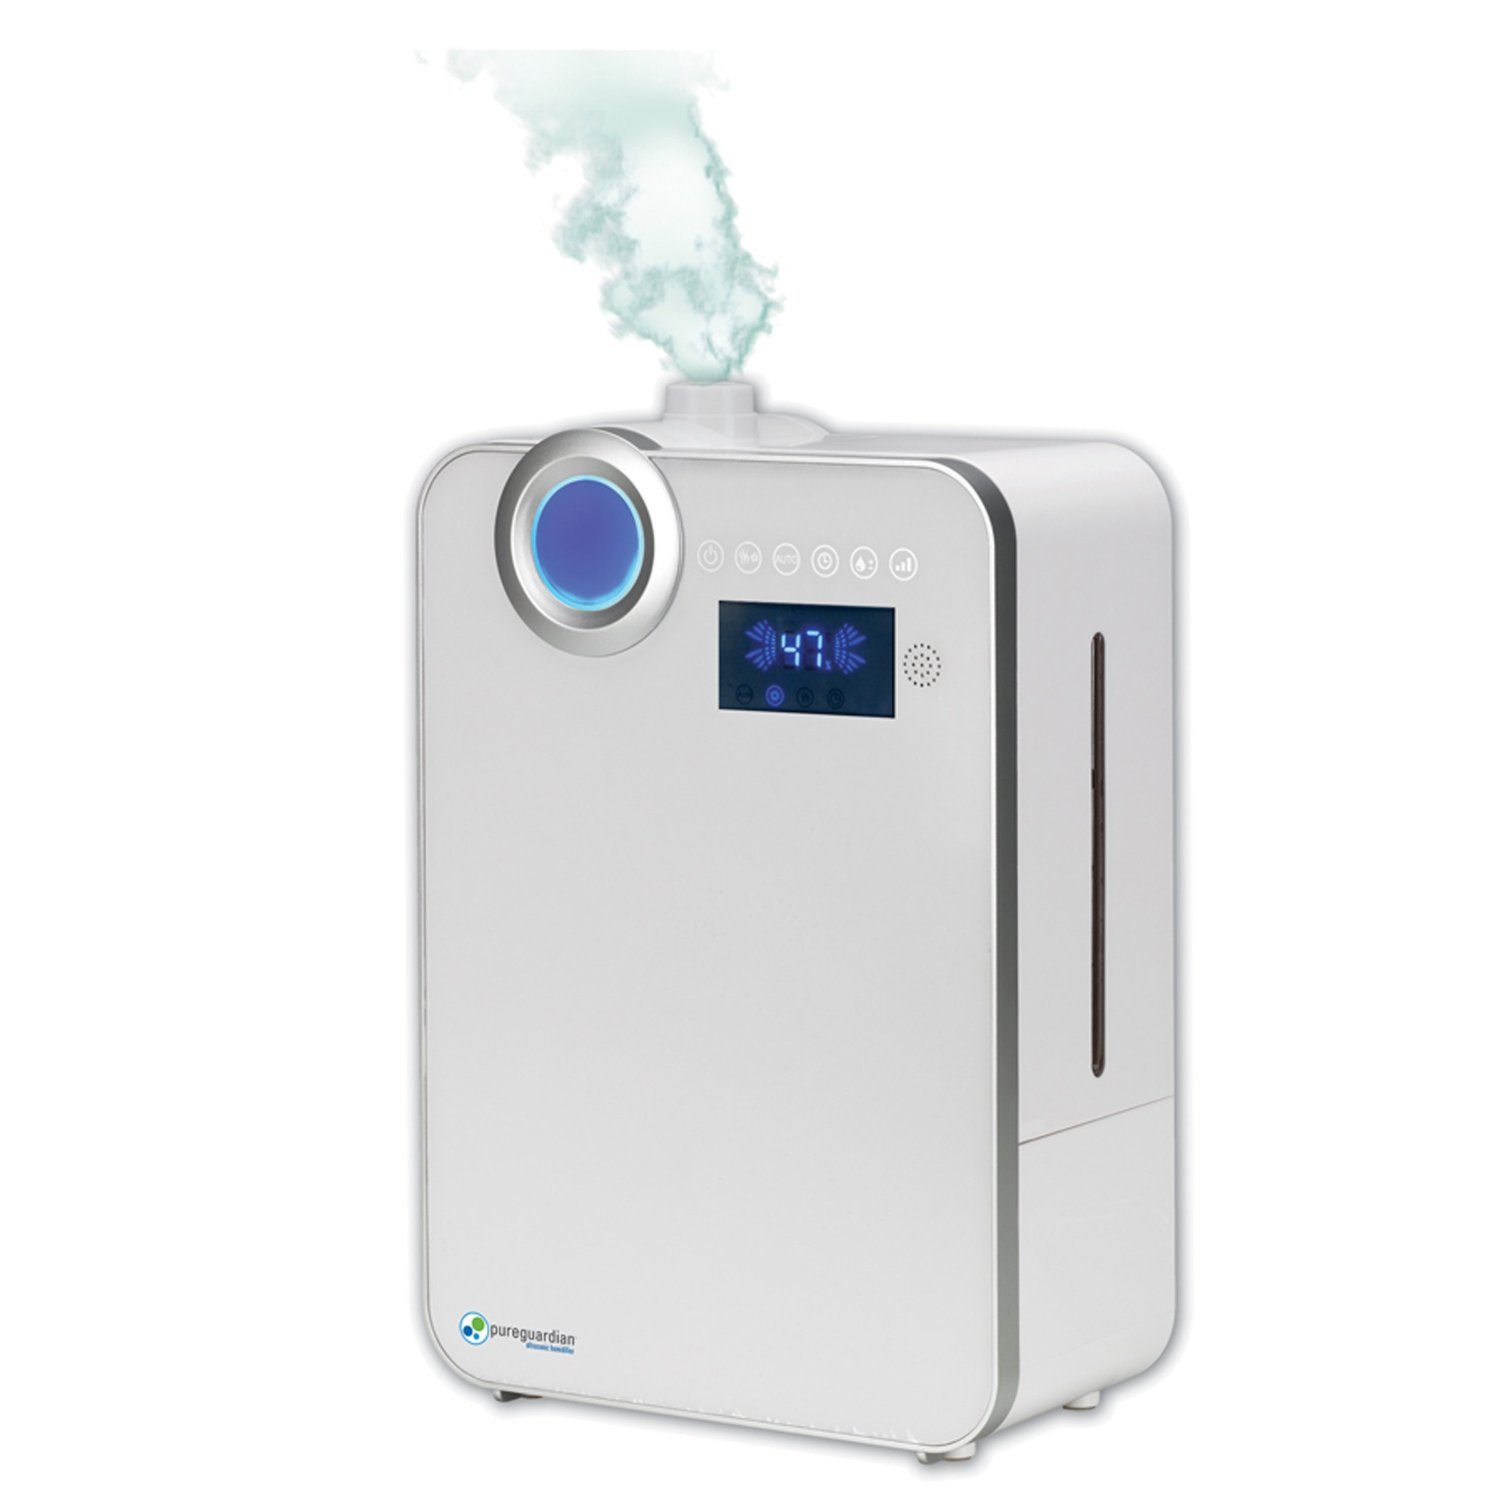 Pureguardian Ultrasonic Humidifier Reviews And Report 2018